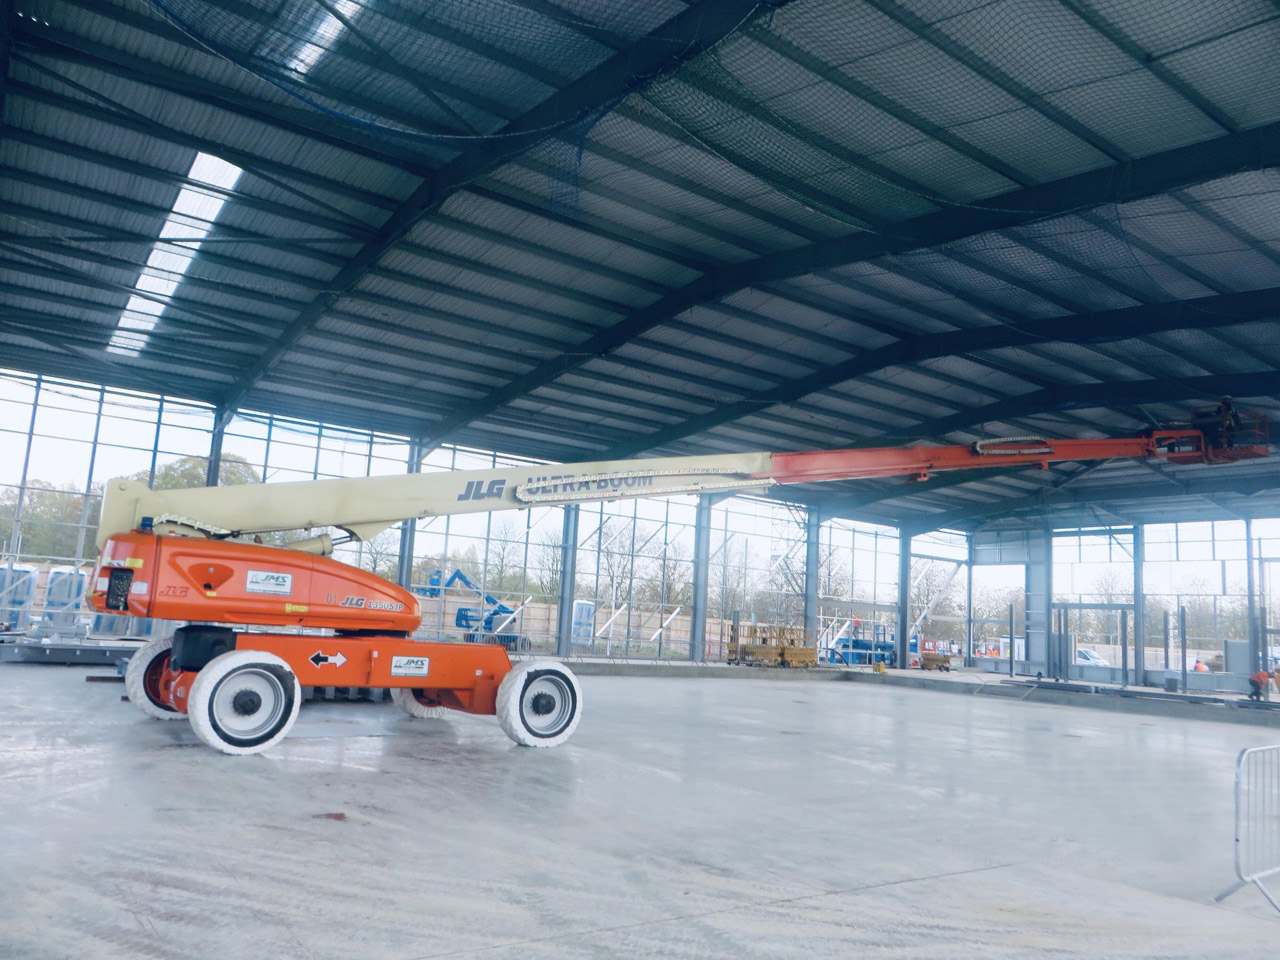 JLG 1350 SJP telescopic boom lift